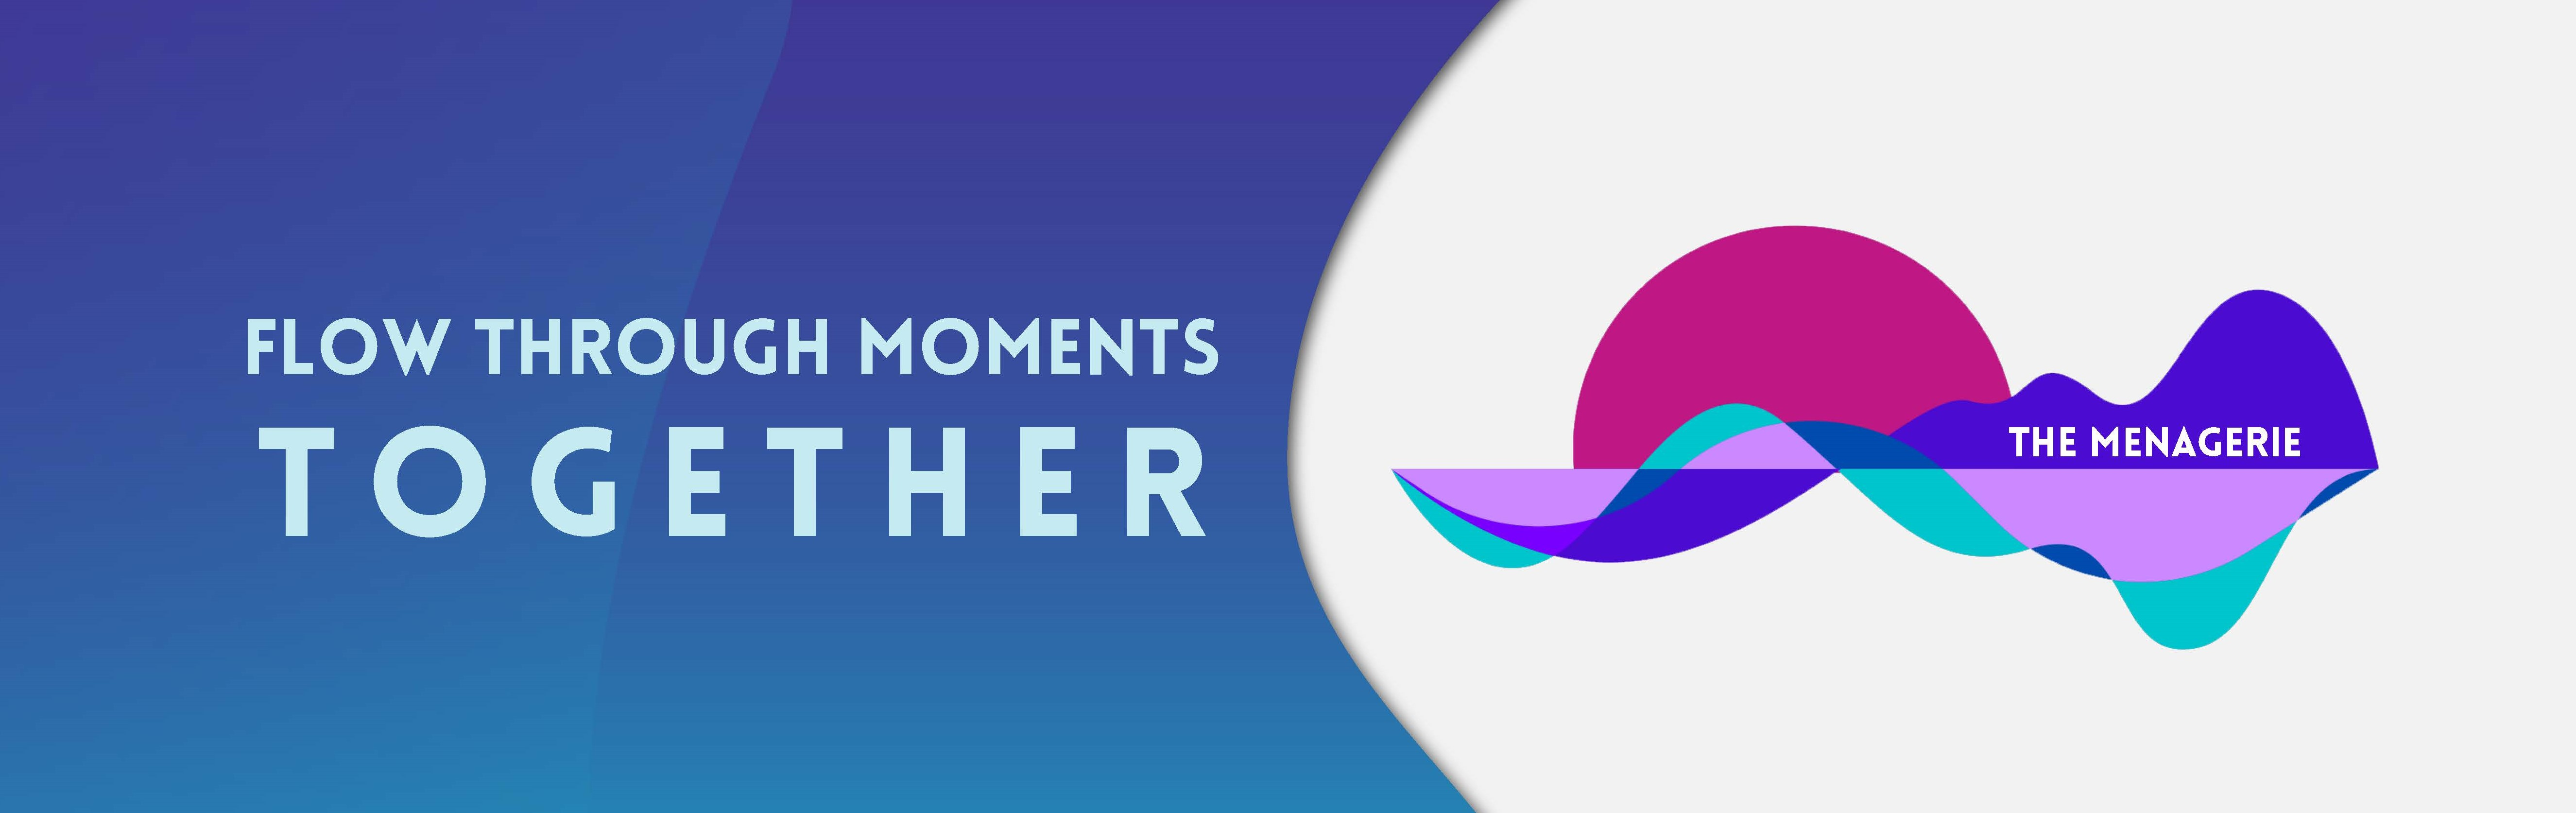 Flow through moments together - The Menagerie logo